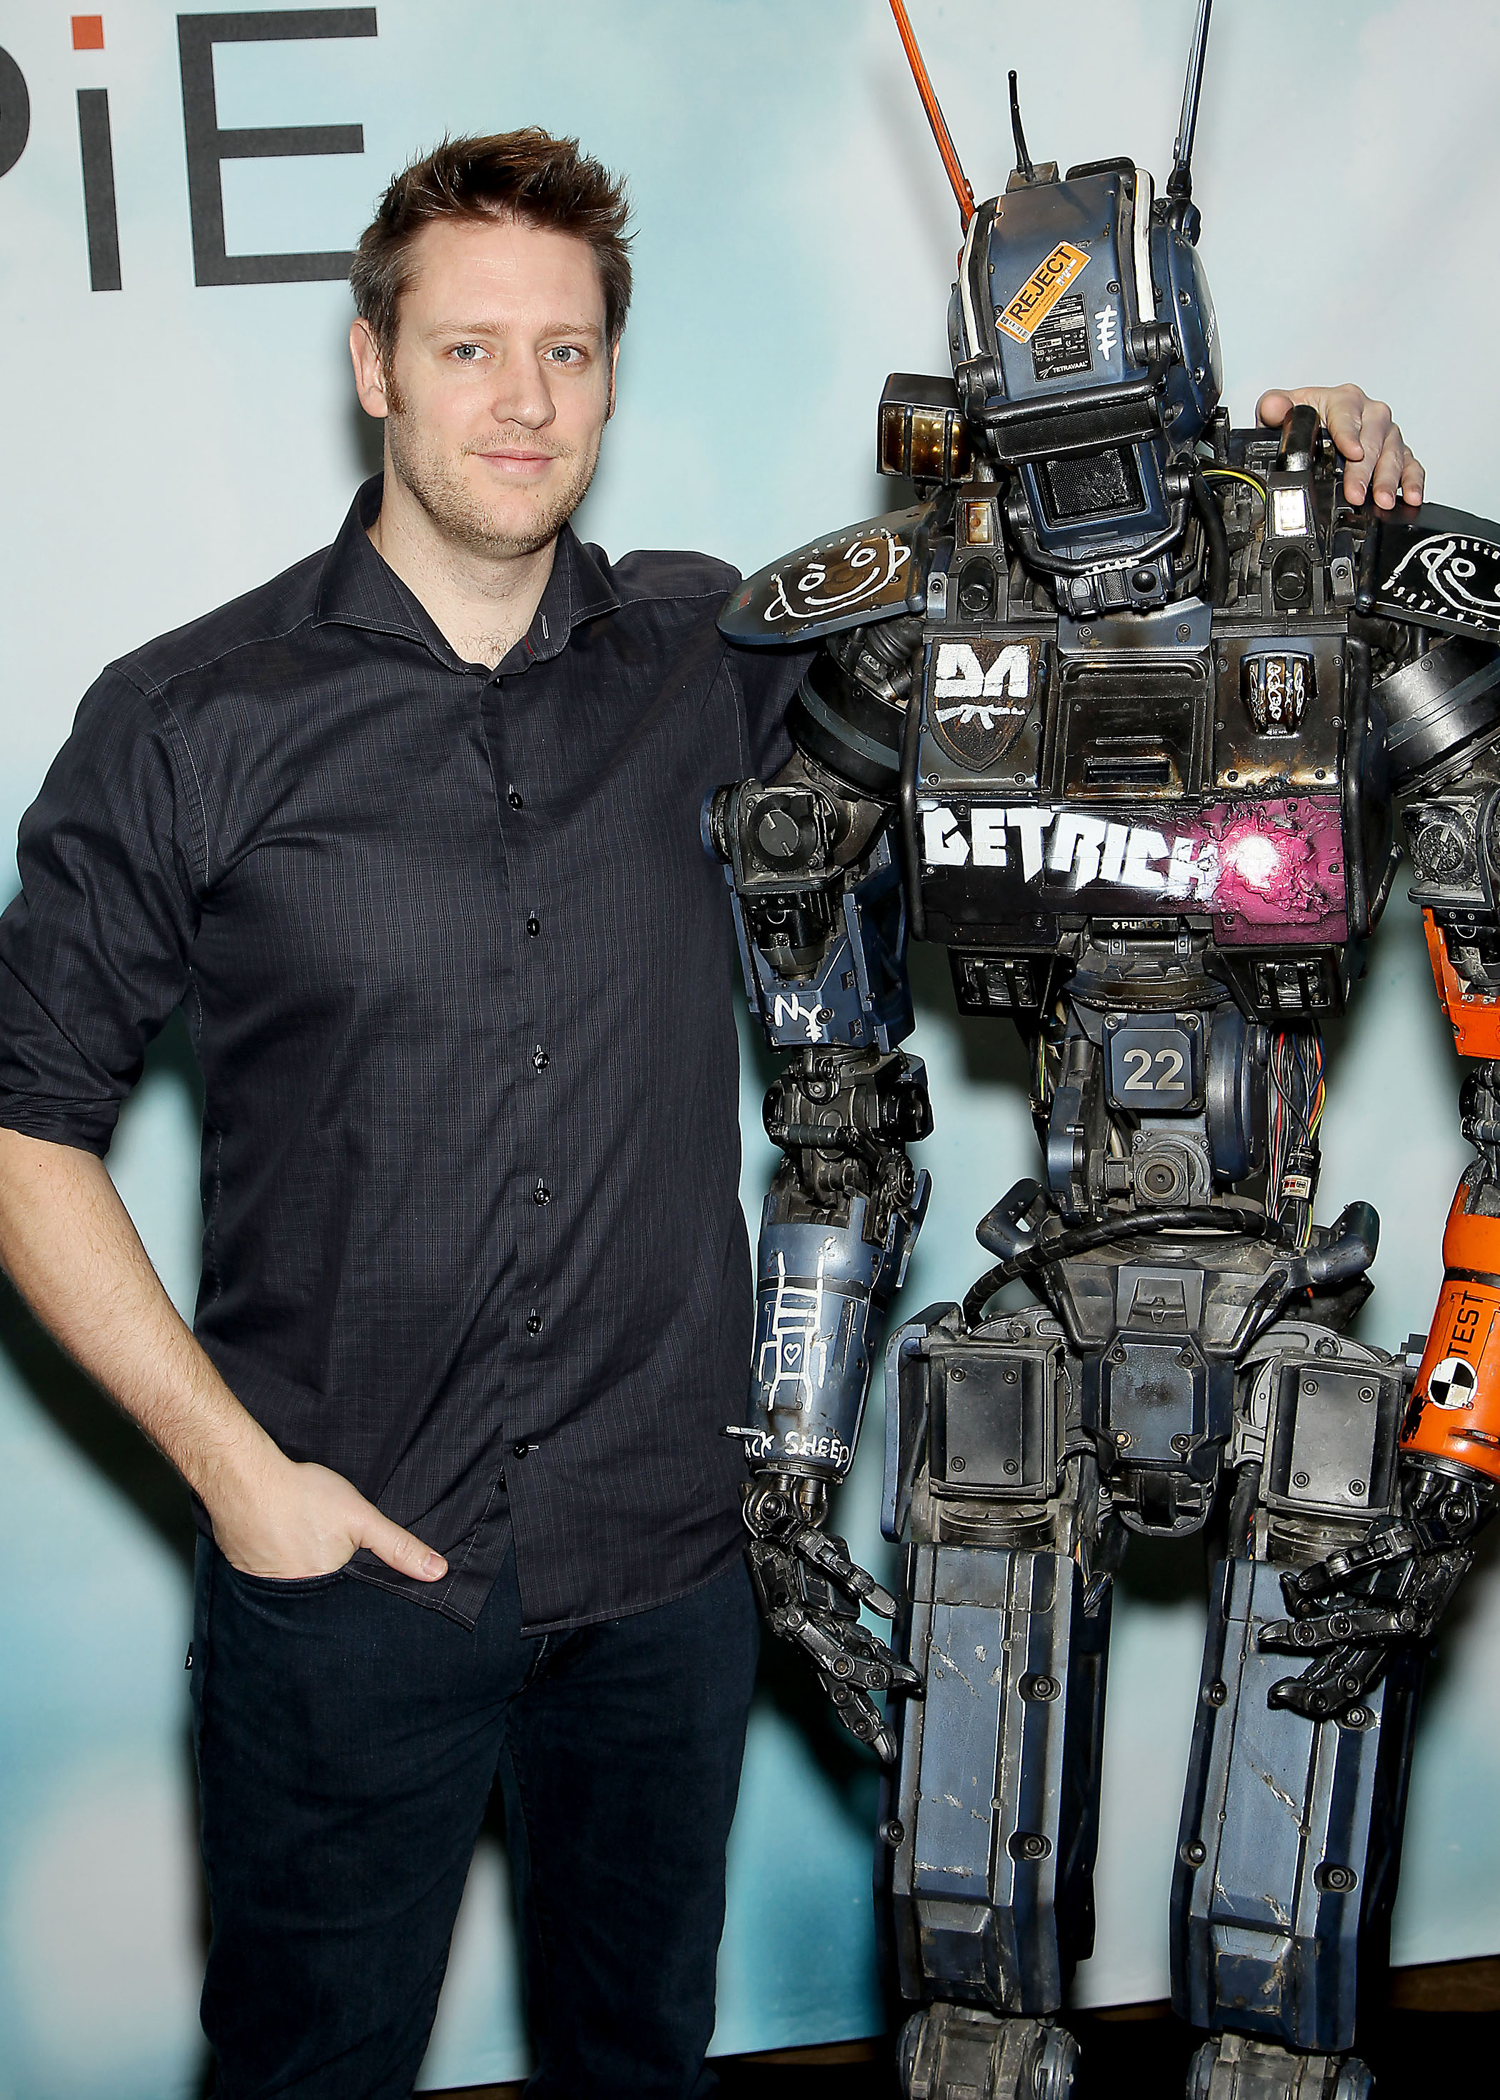 """Neill Blomkamp from """"Chappie,"""" The GT-R, and His Car"""